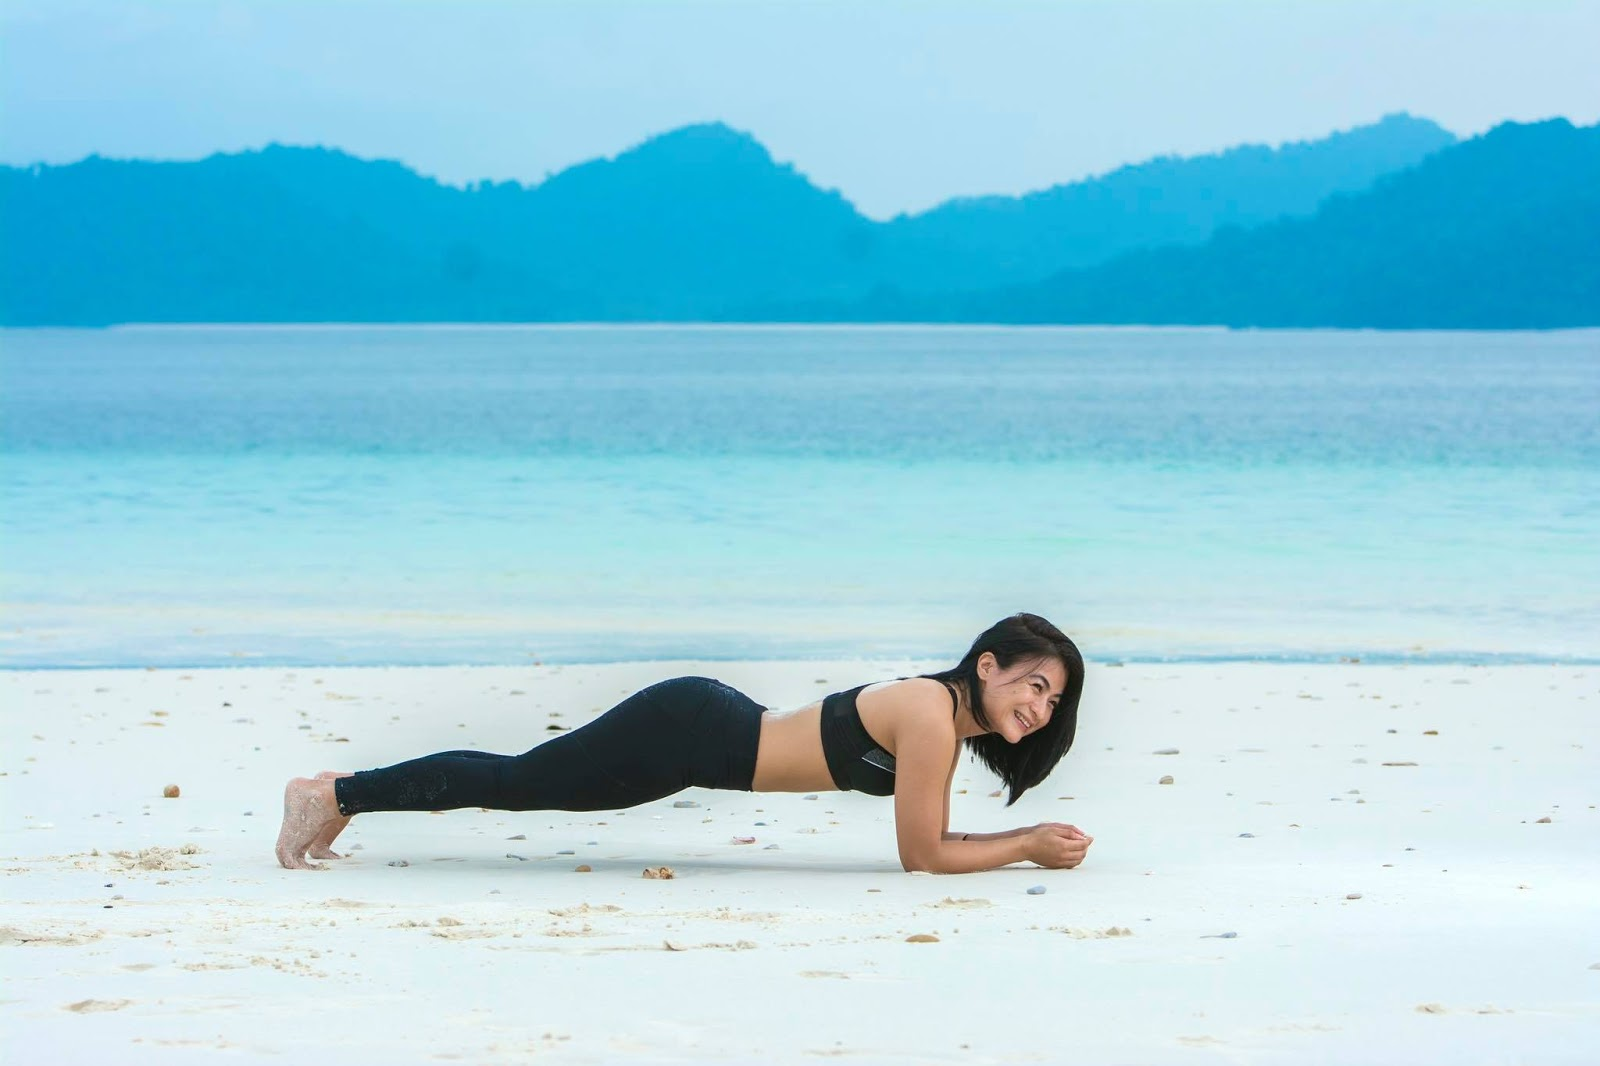 Khin Lay Nwe Doing Exercise At The Beach